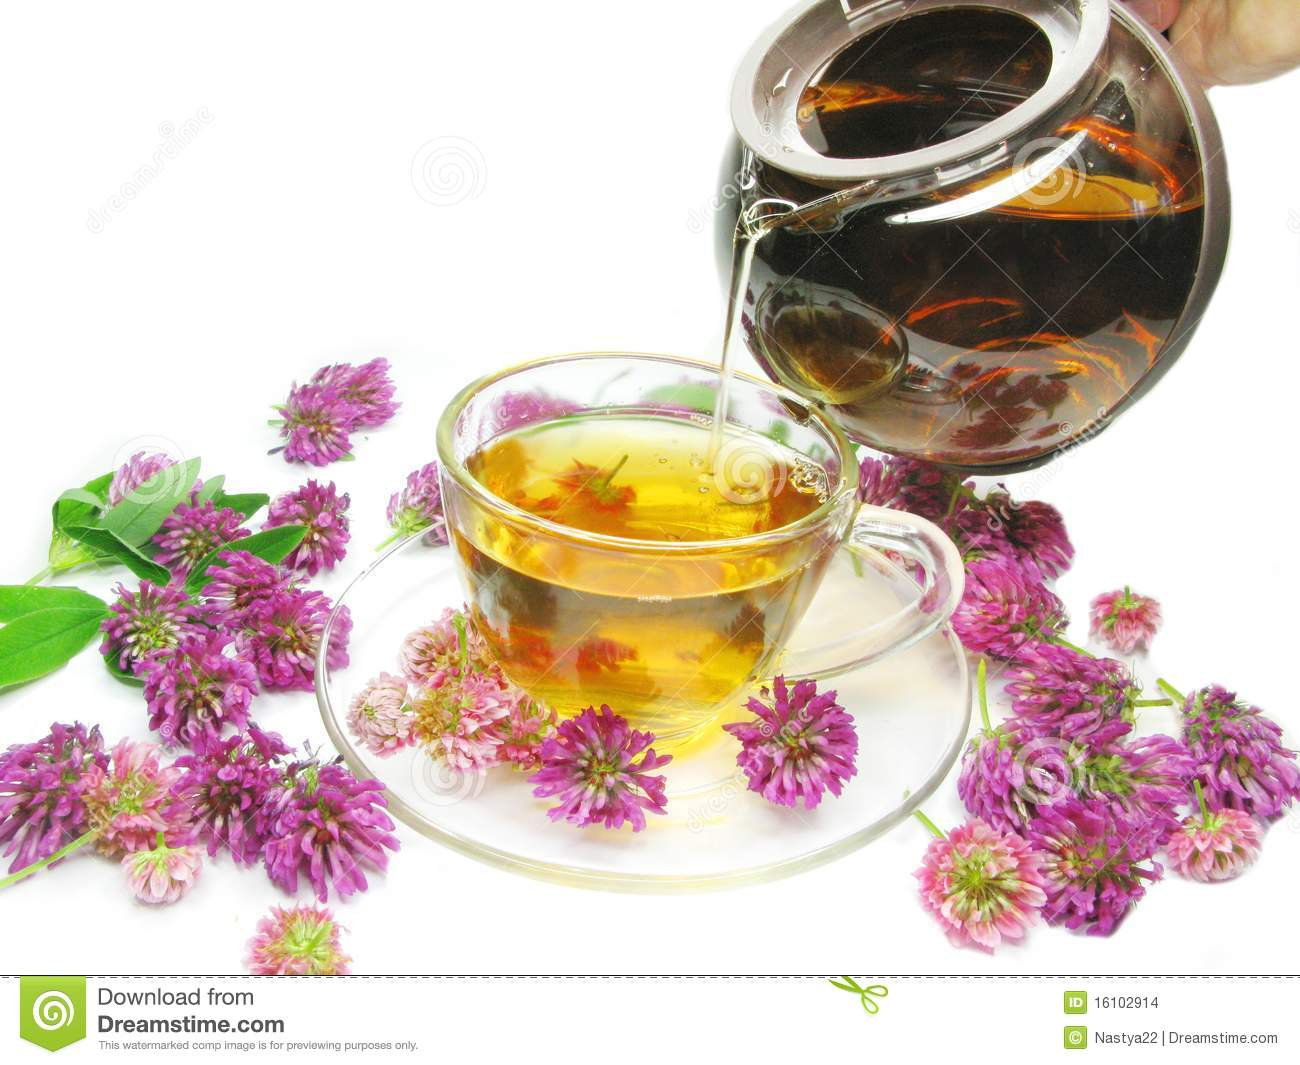 herbal-tea-clover-flowers.jpg